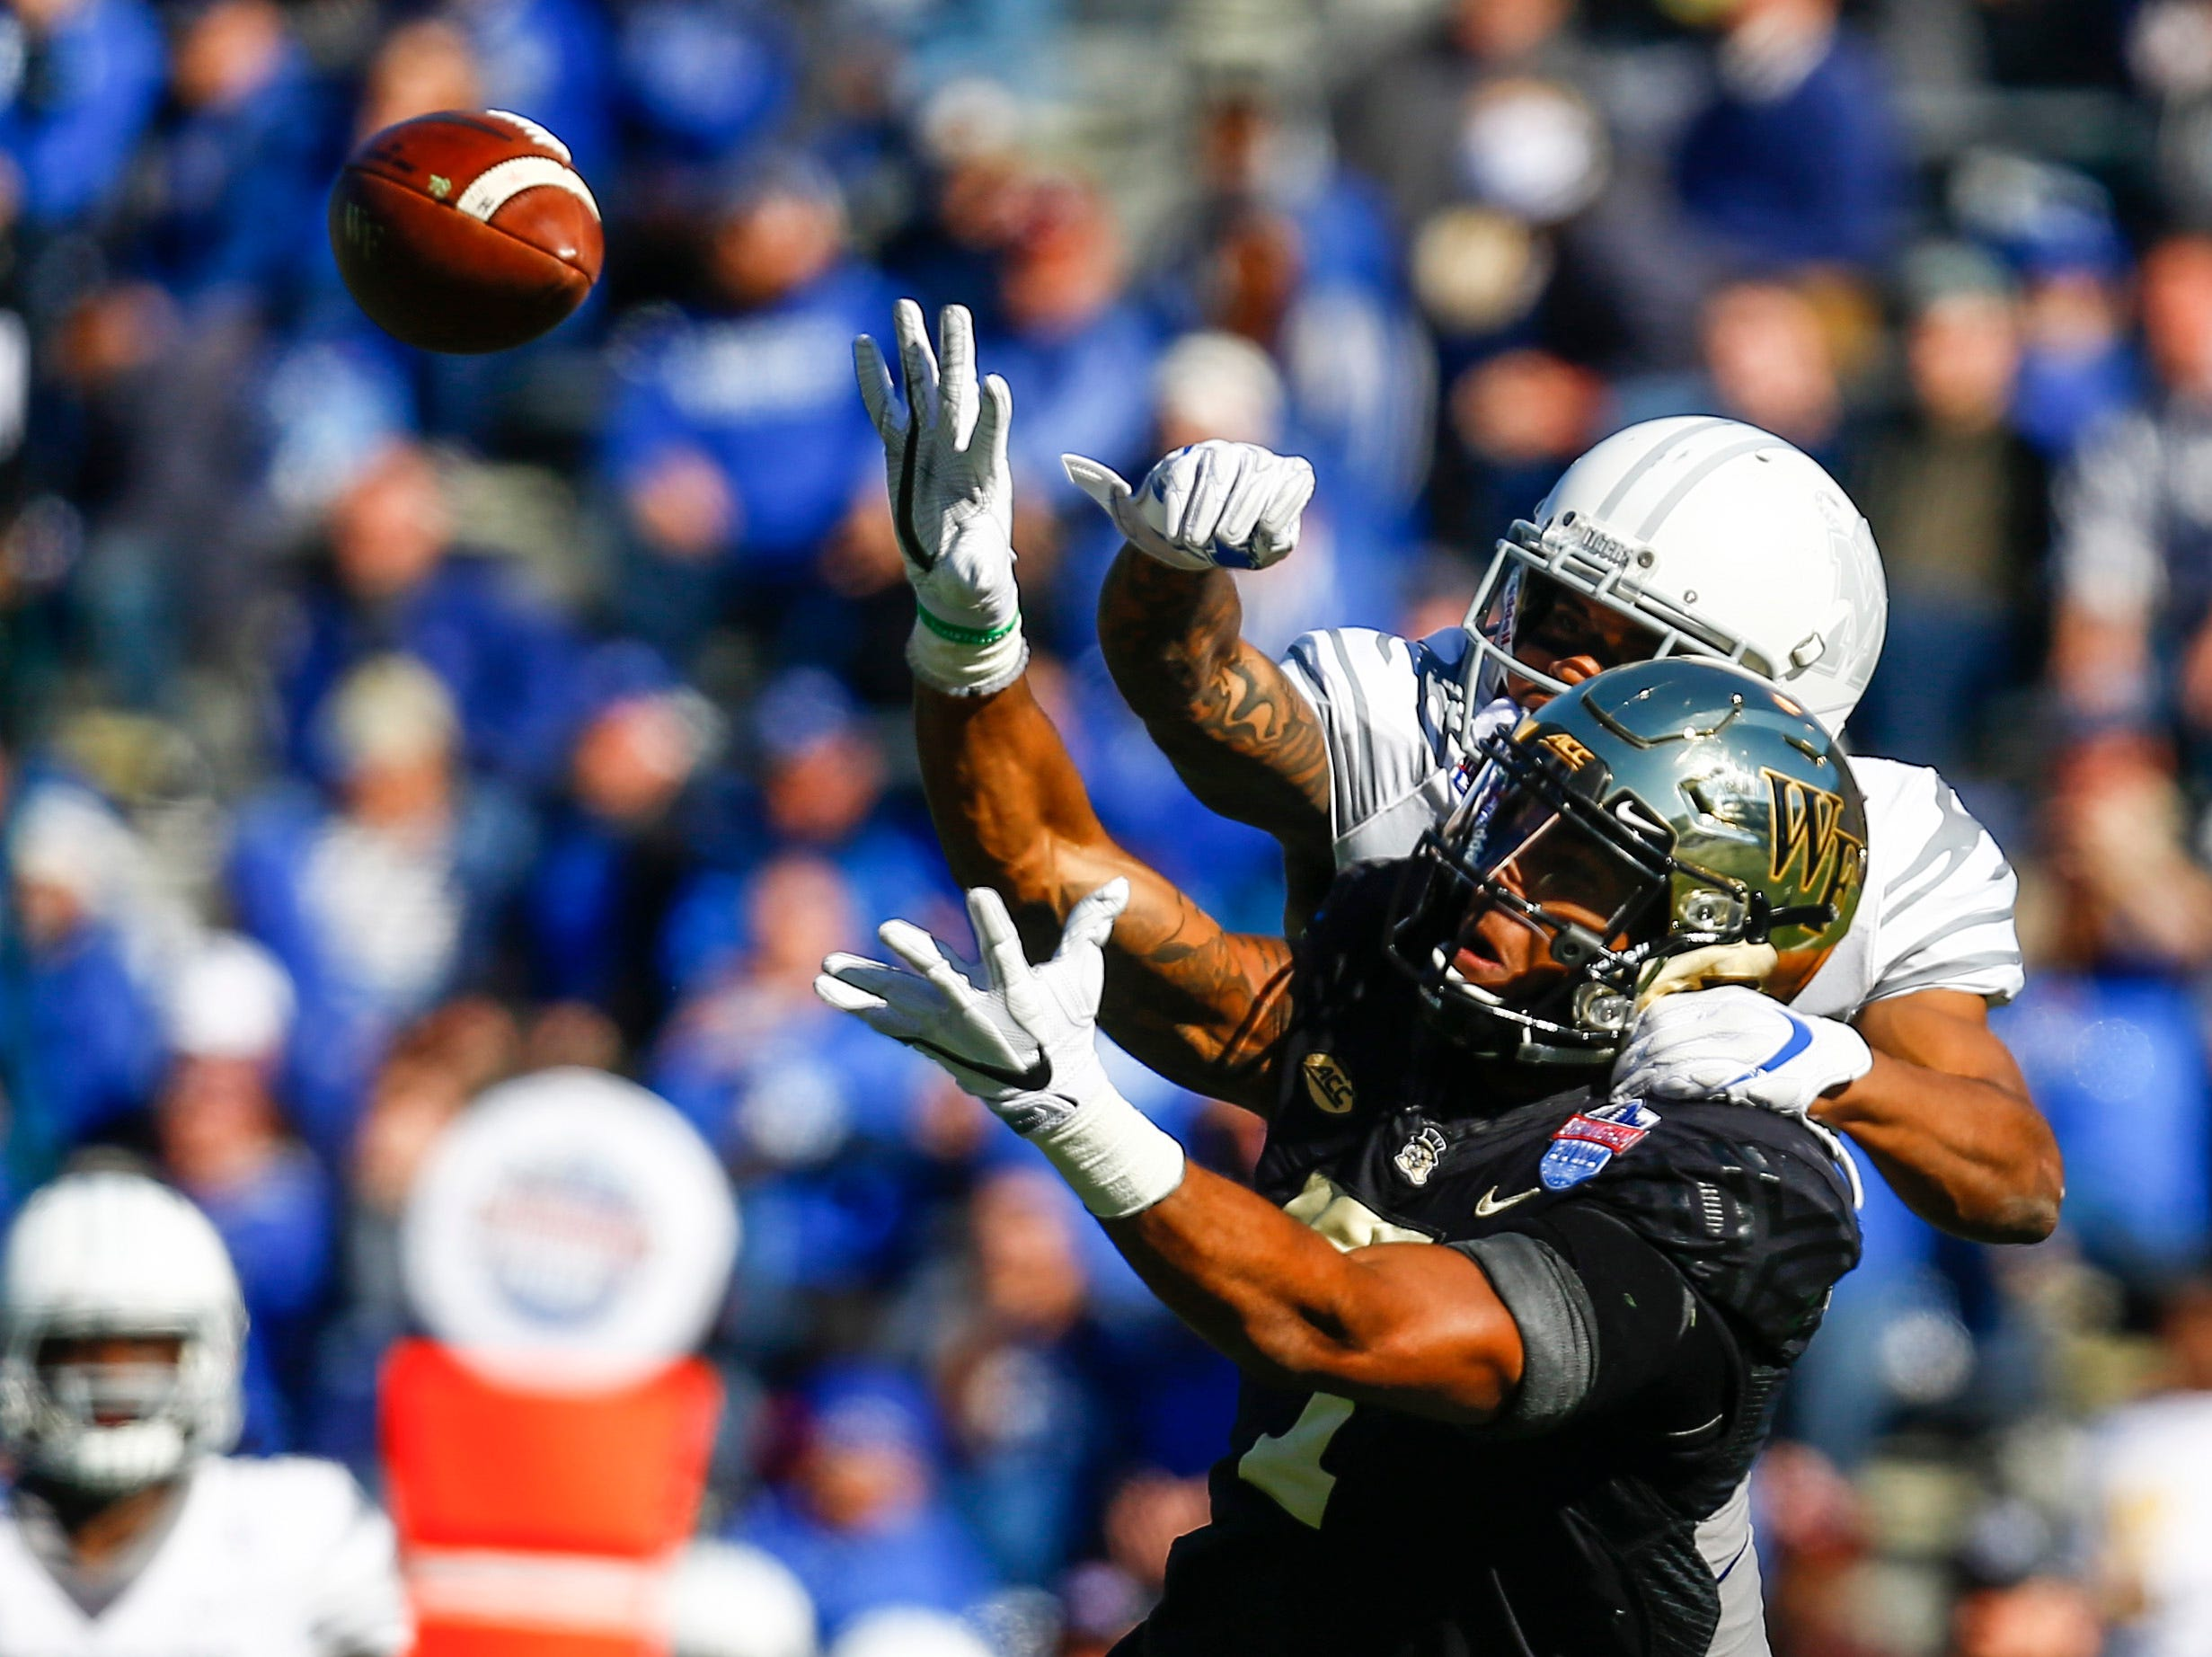 Wake Forest Demon Deacons wide receiver Scotty Washington (7) catches a pass as Memphis Tigers defensive back T.J. Carter (2) tries to defend during the first half of the Birmingham Bowl.